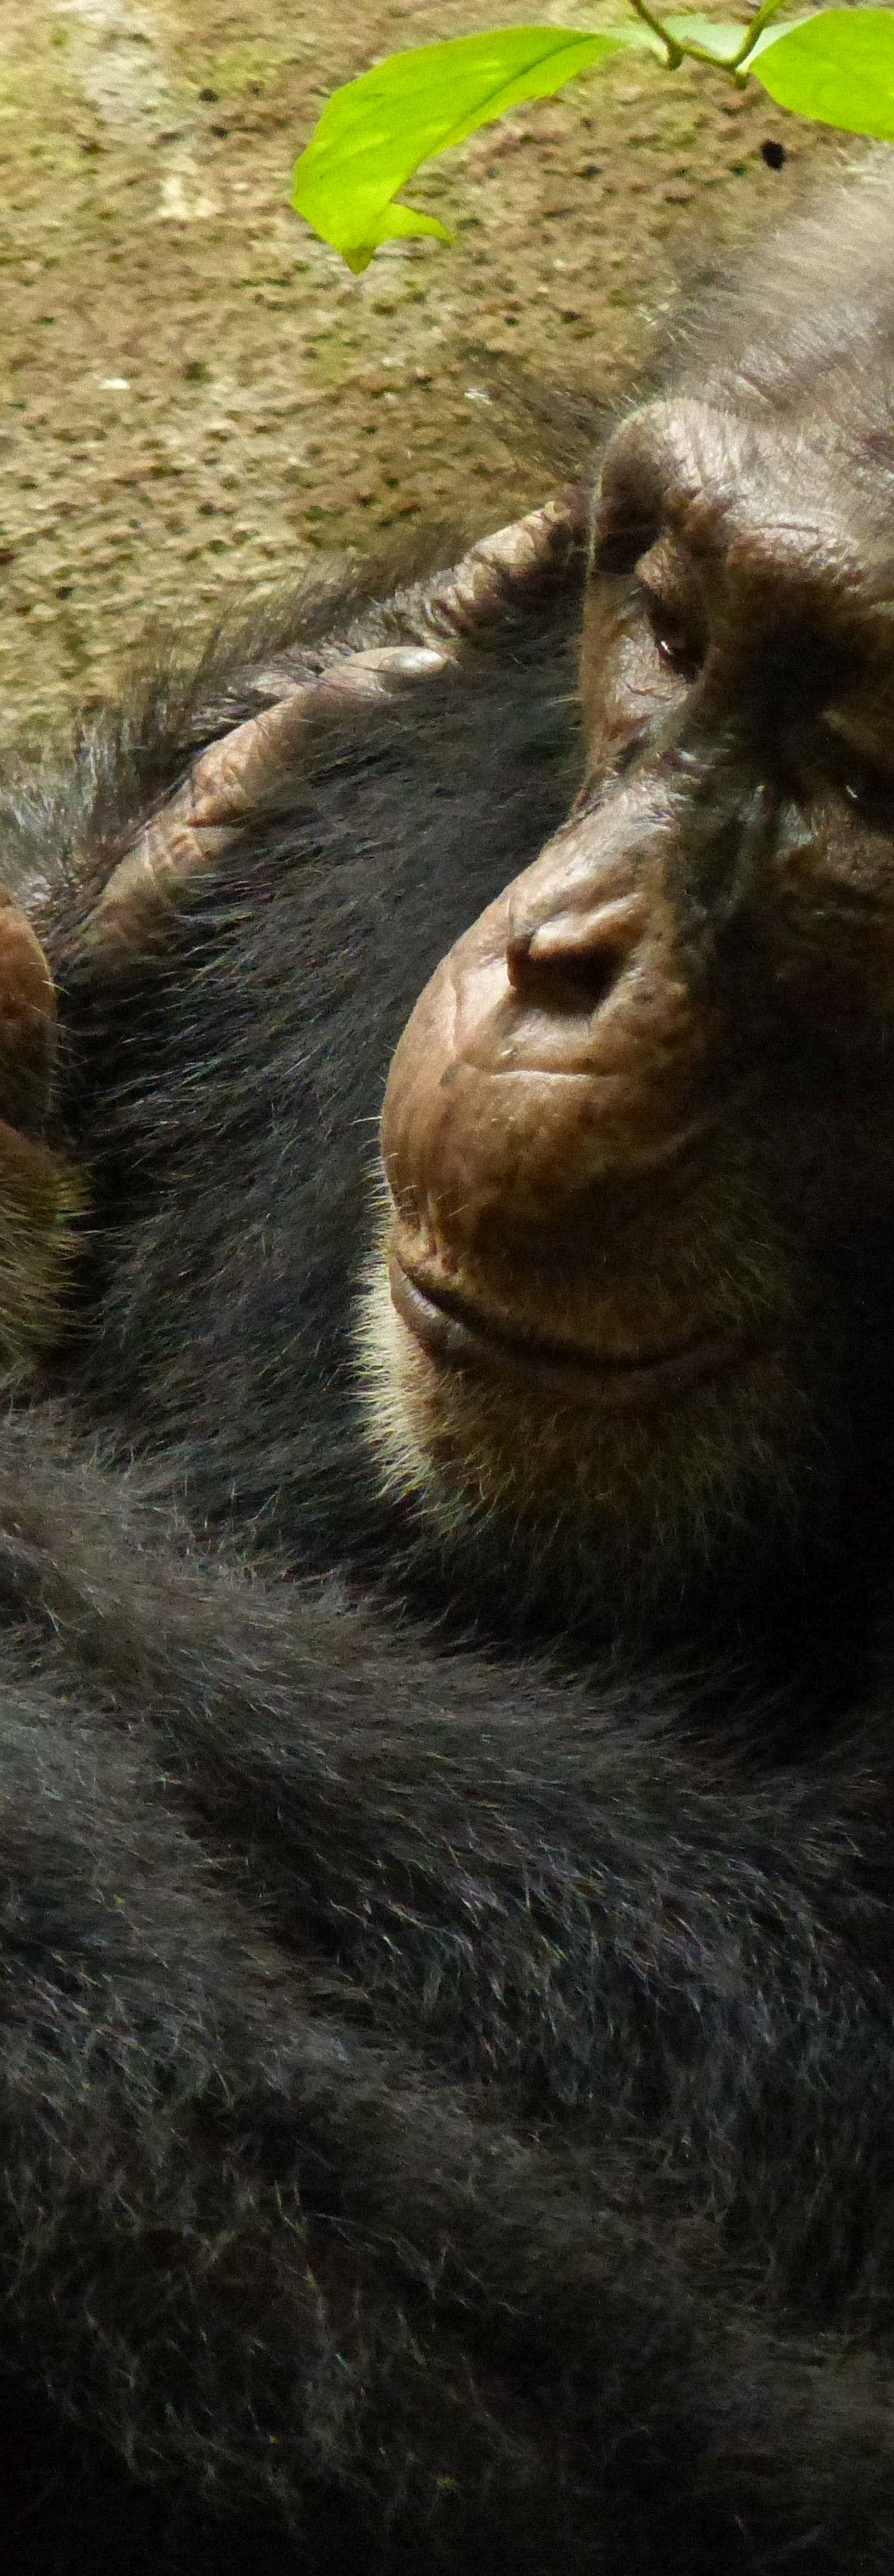 Chimp Behaviors, Passed Down Over Generations, Are Starting to Disappear